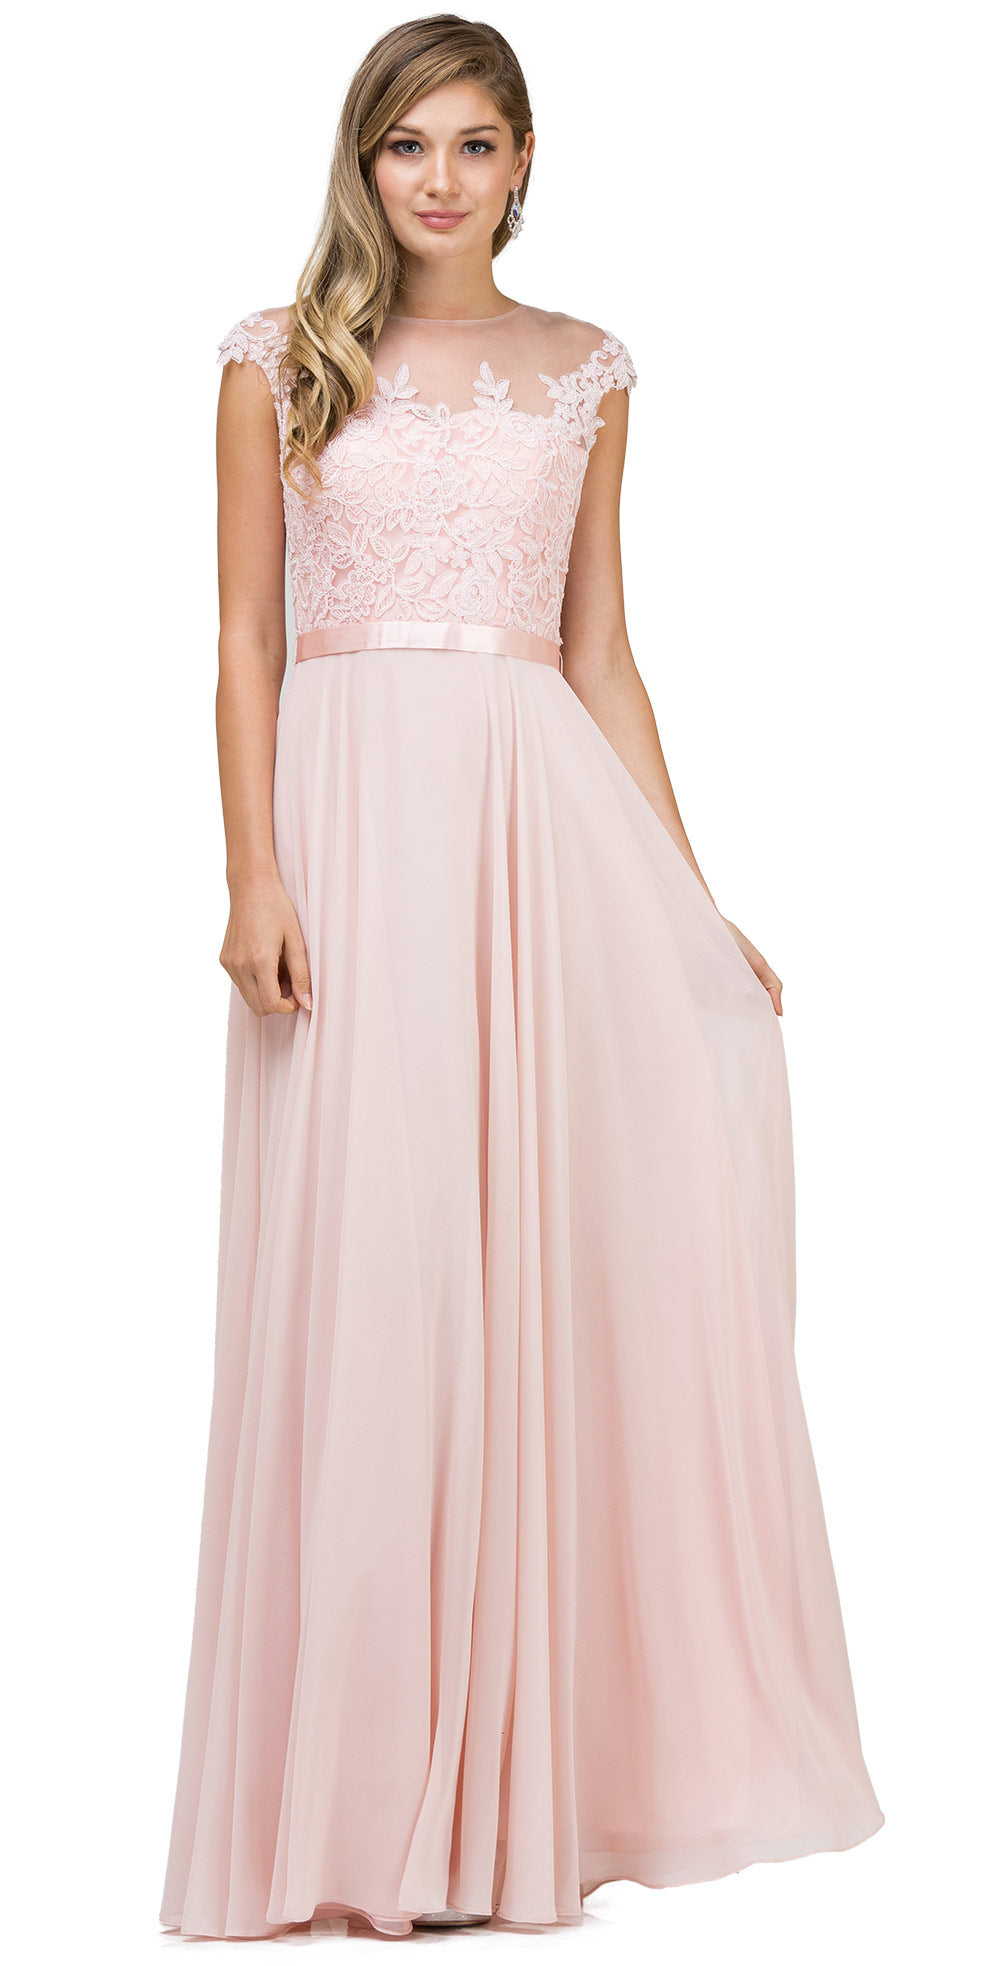 Image of Embroidered Mesh Bodice Long Chiffon Prom Formal Dress in Blush